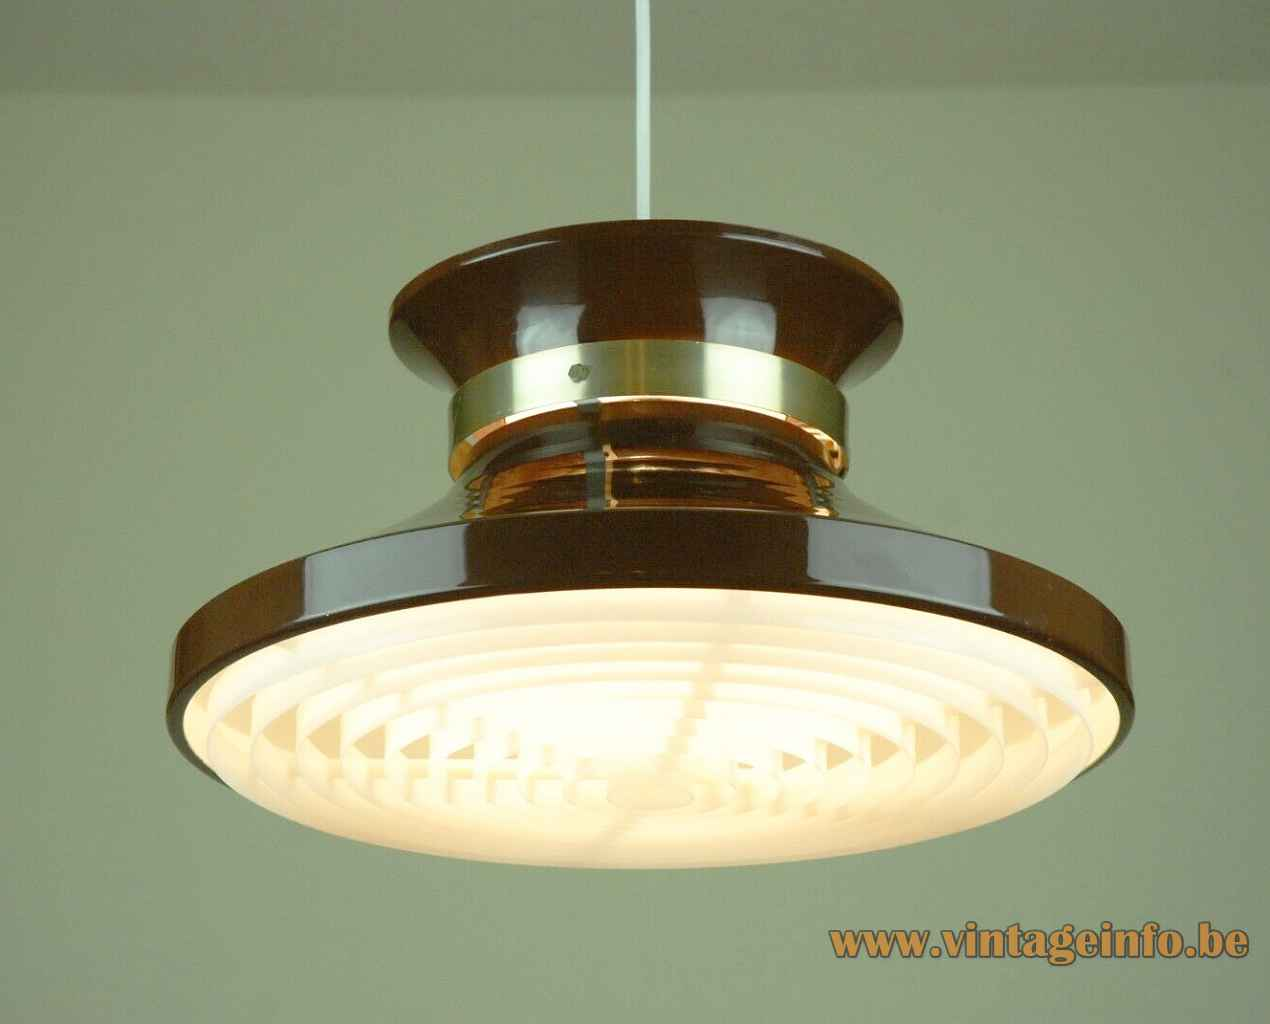 Carl Thore Granhaga pendant lamp brown aluminium lampshade brass collar white plastic grid diffuser 1960s 1970s Sweden